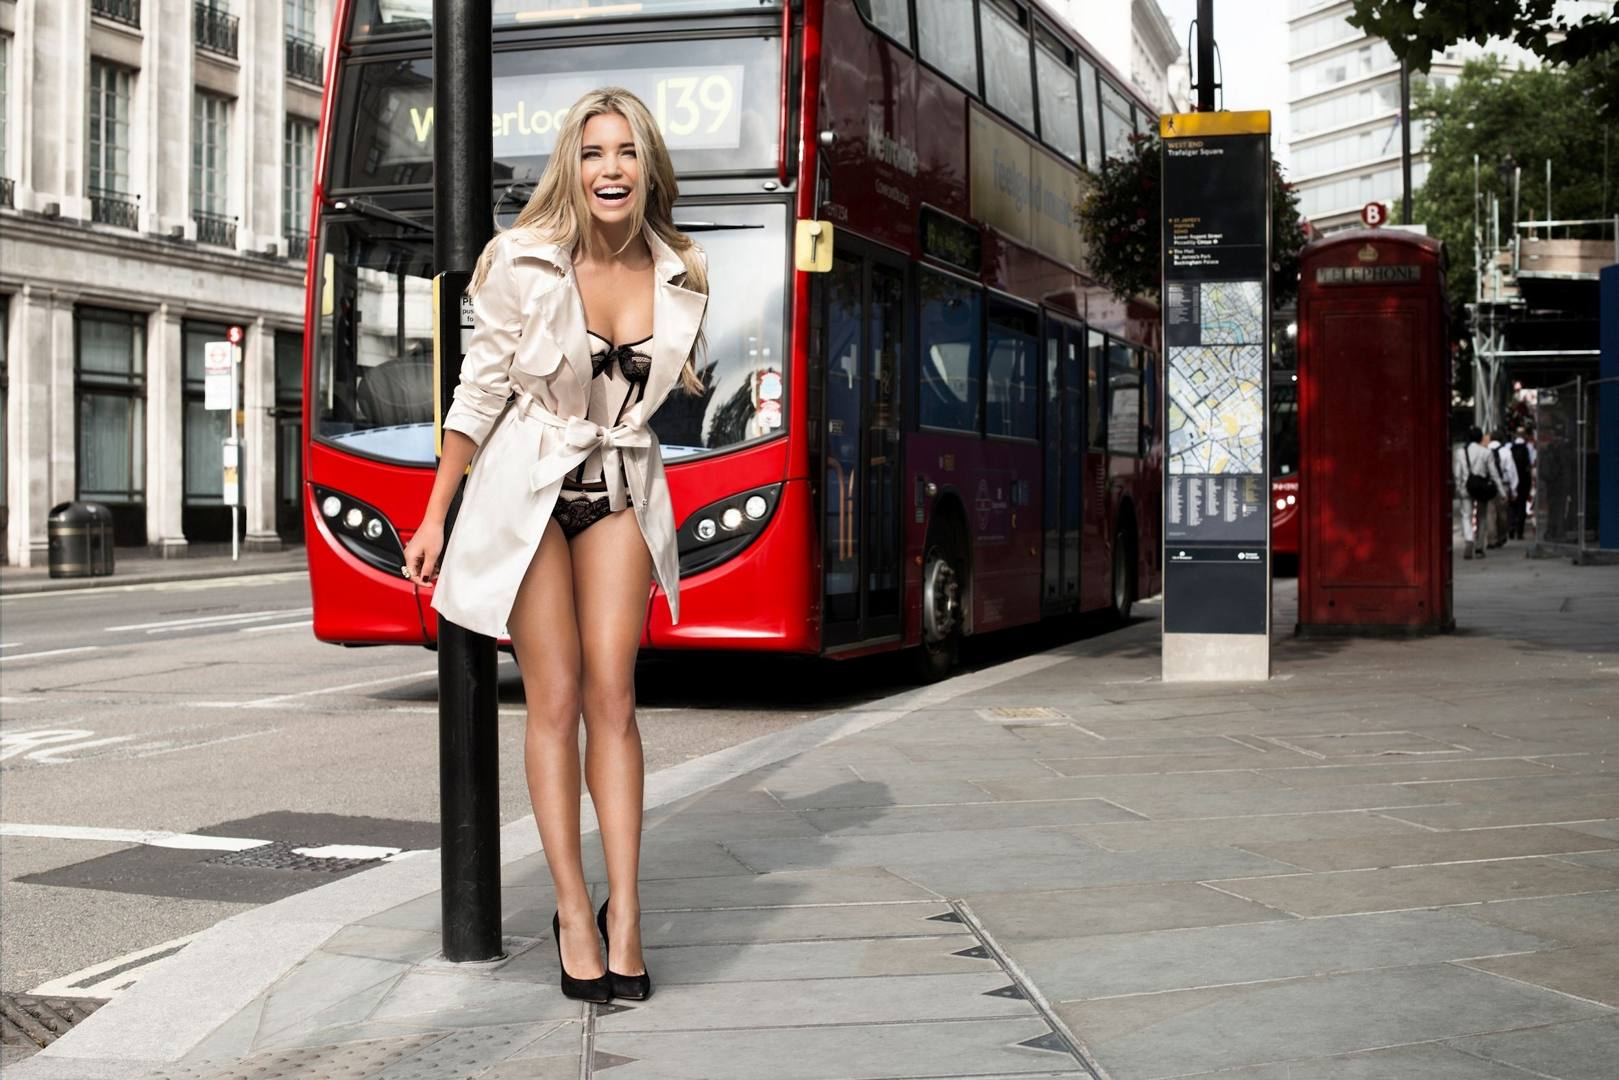 Watch as sylvie struts her stuff all over london and try not to drool